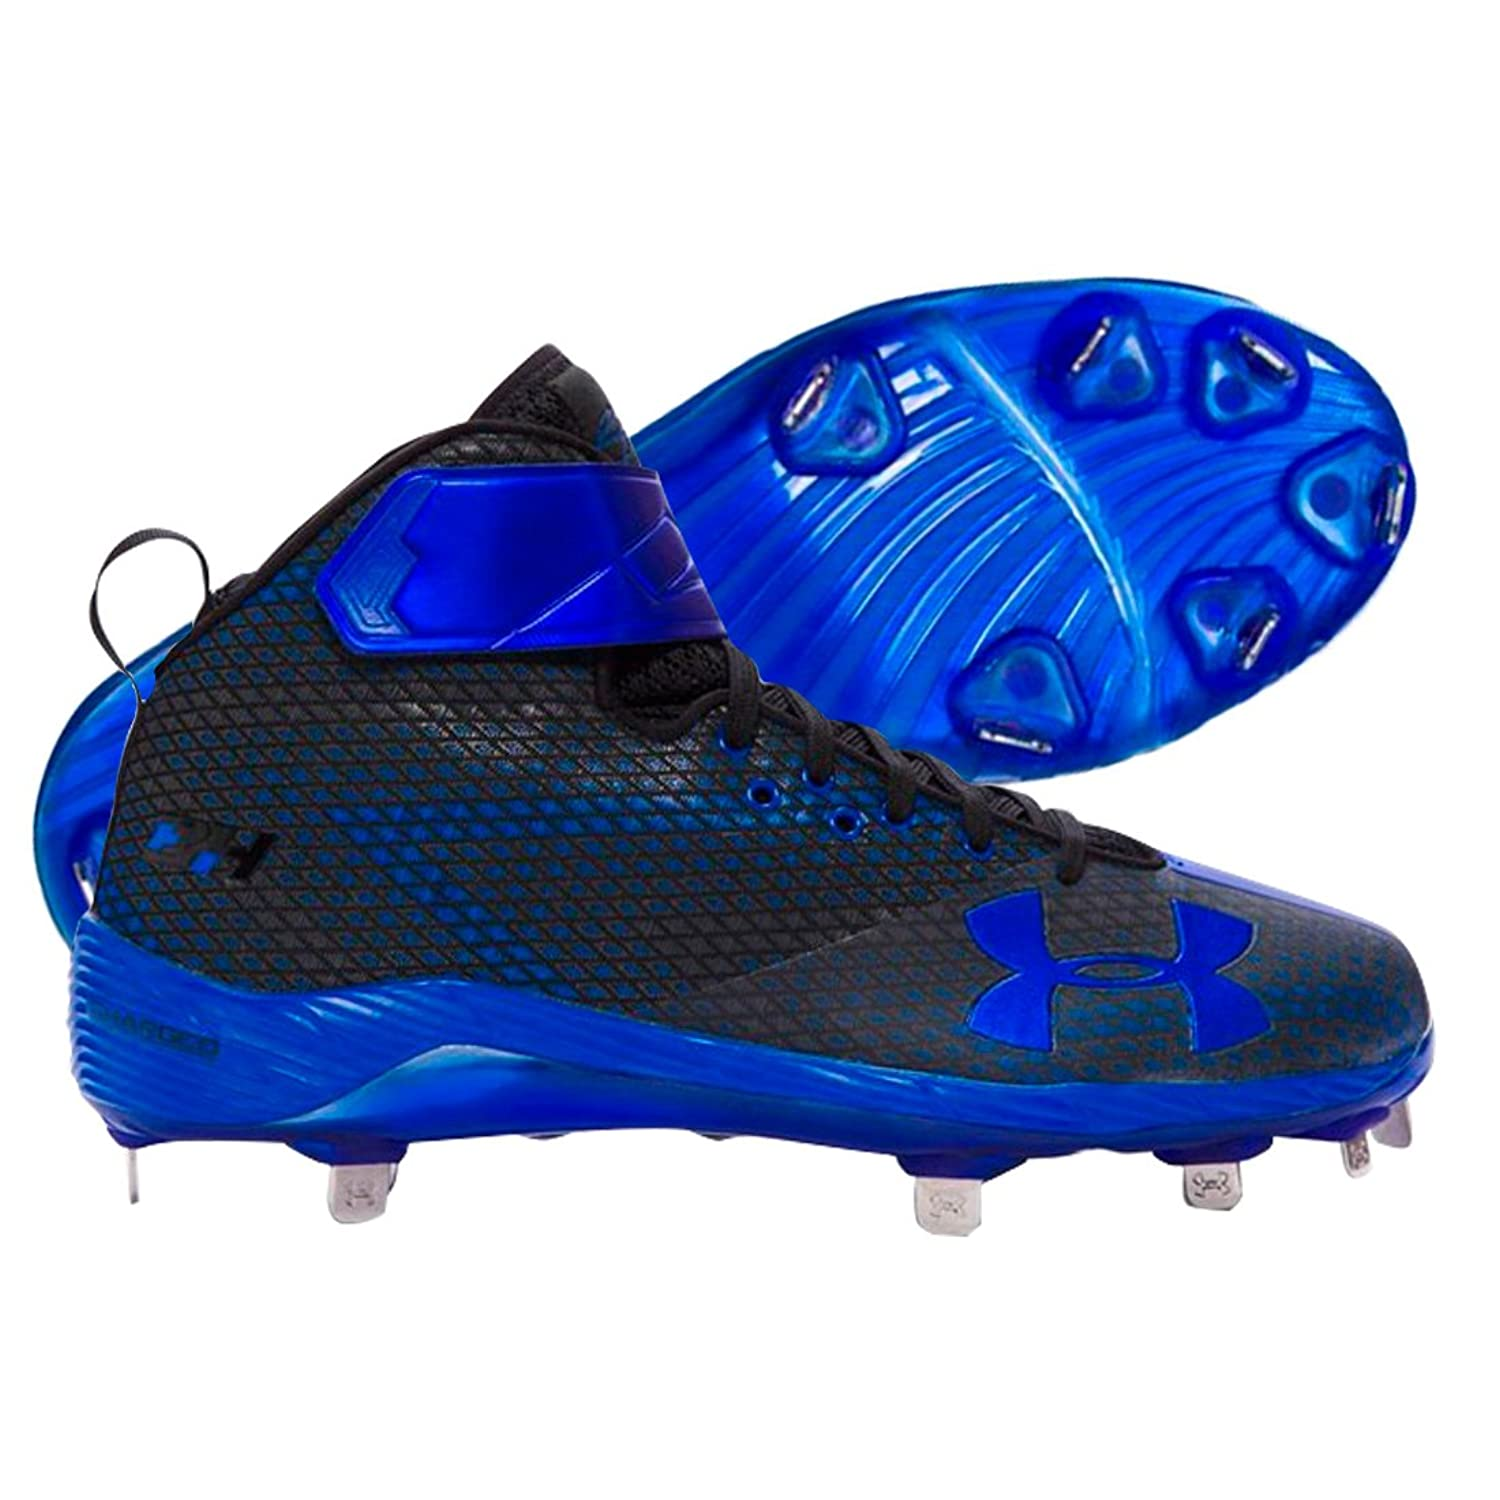 UNDER ARMOUR UA HARPER ONE MID ST 1278699-014 [並行輸入品] B07BVPY1R6 25.5 cm